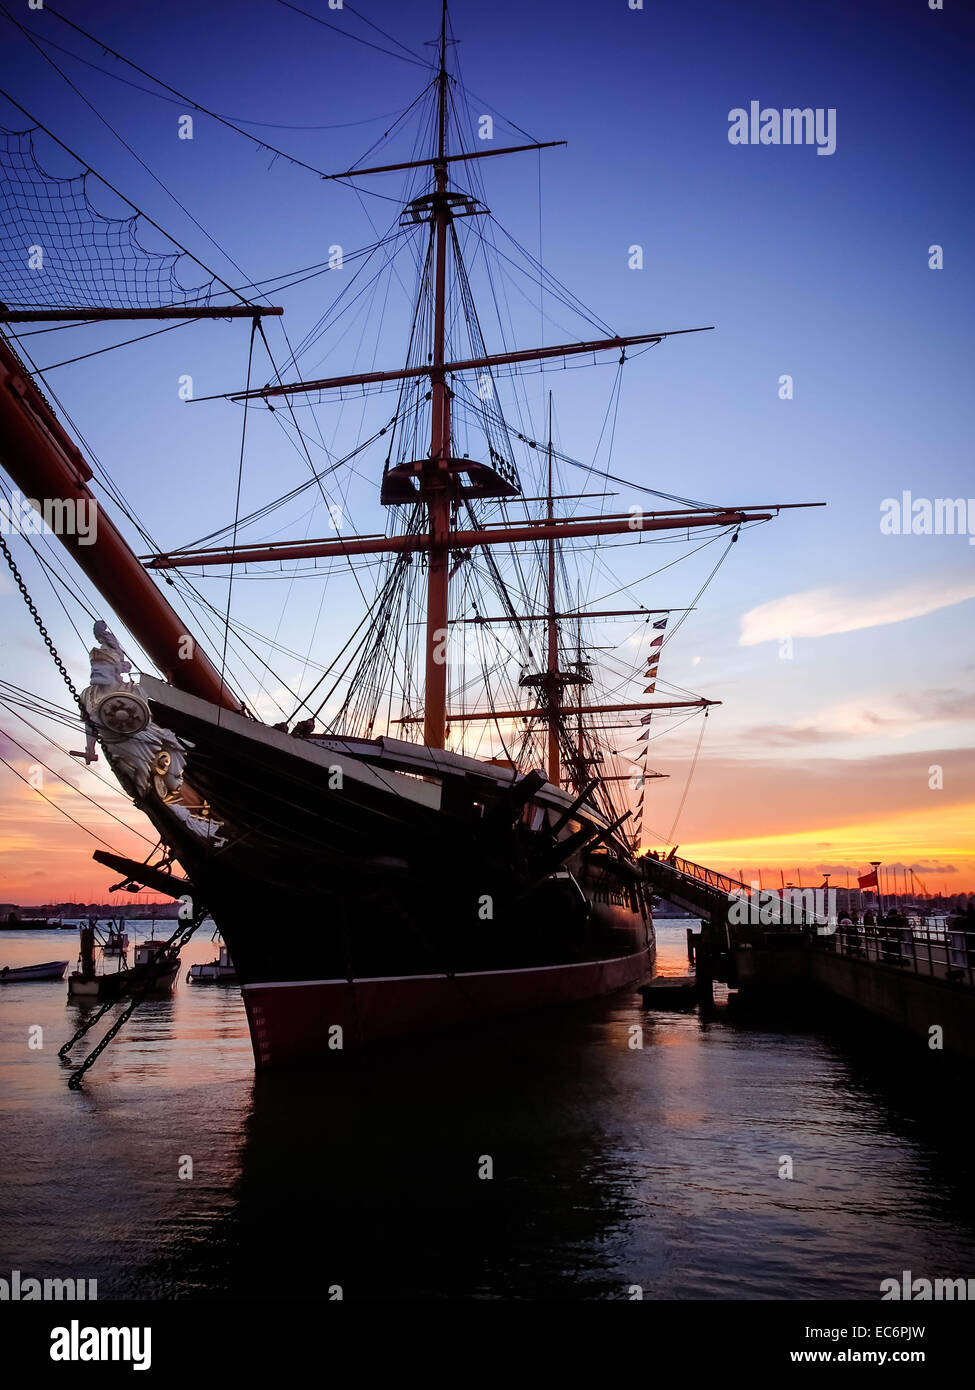 hms-warrior-at-sunset-in-portsmouth-historic-dockyard-england-EC6PJW.jpg